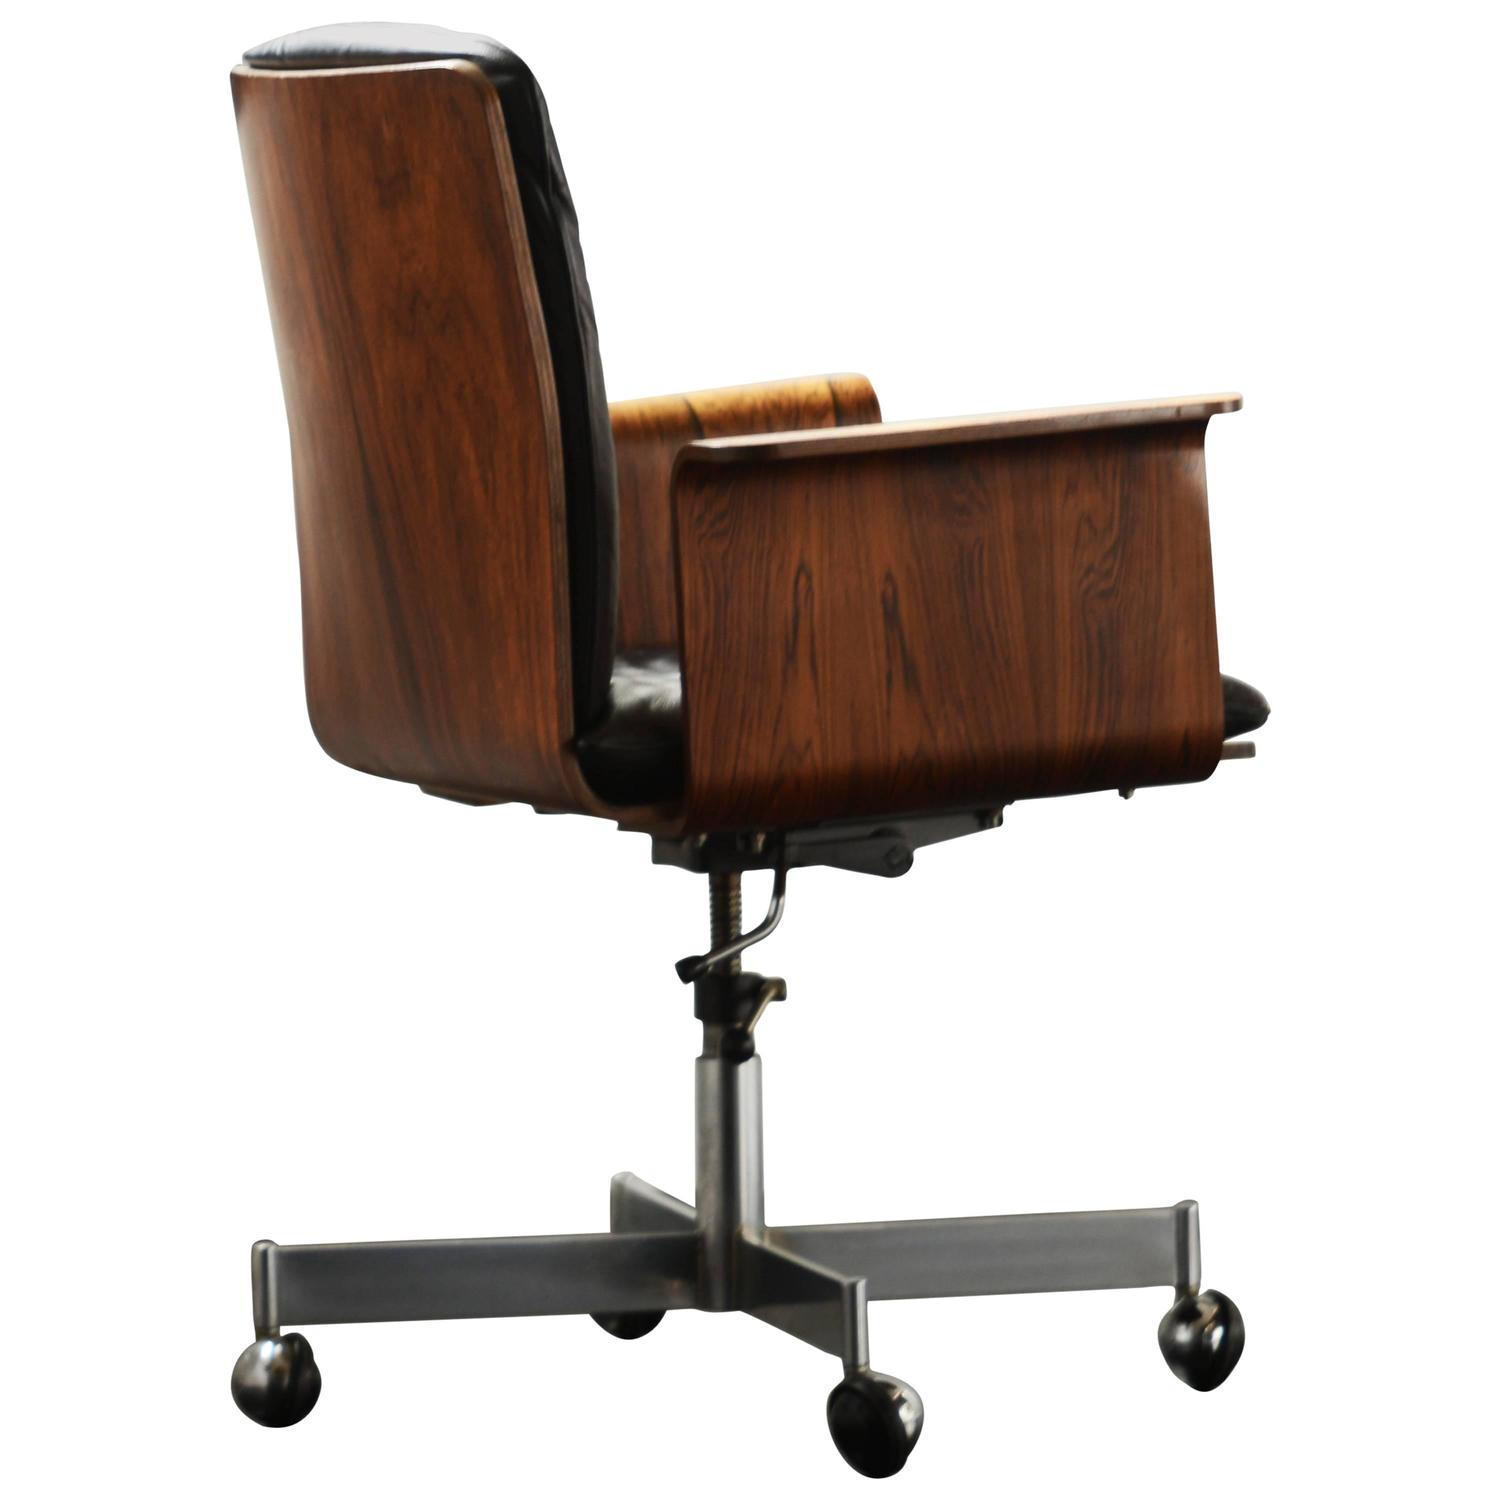 jorgen rasmussen rosewood and black leather desk or office chair denmark 1960s for sale at 1stdibs. Black Bedroom Furniture Sets. Home Design Ideas